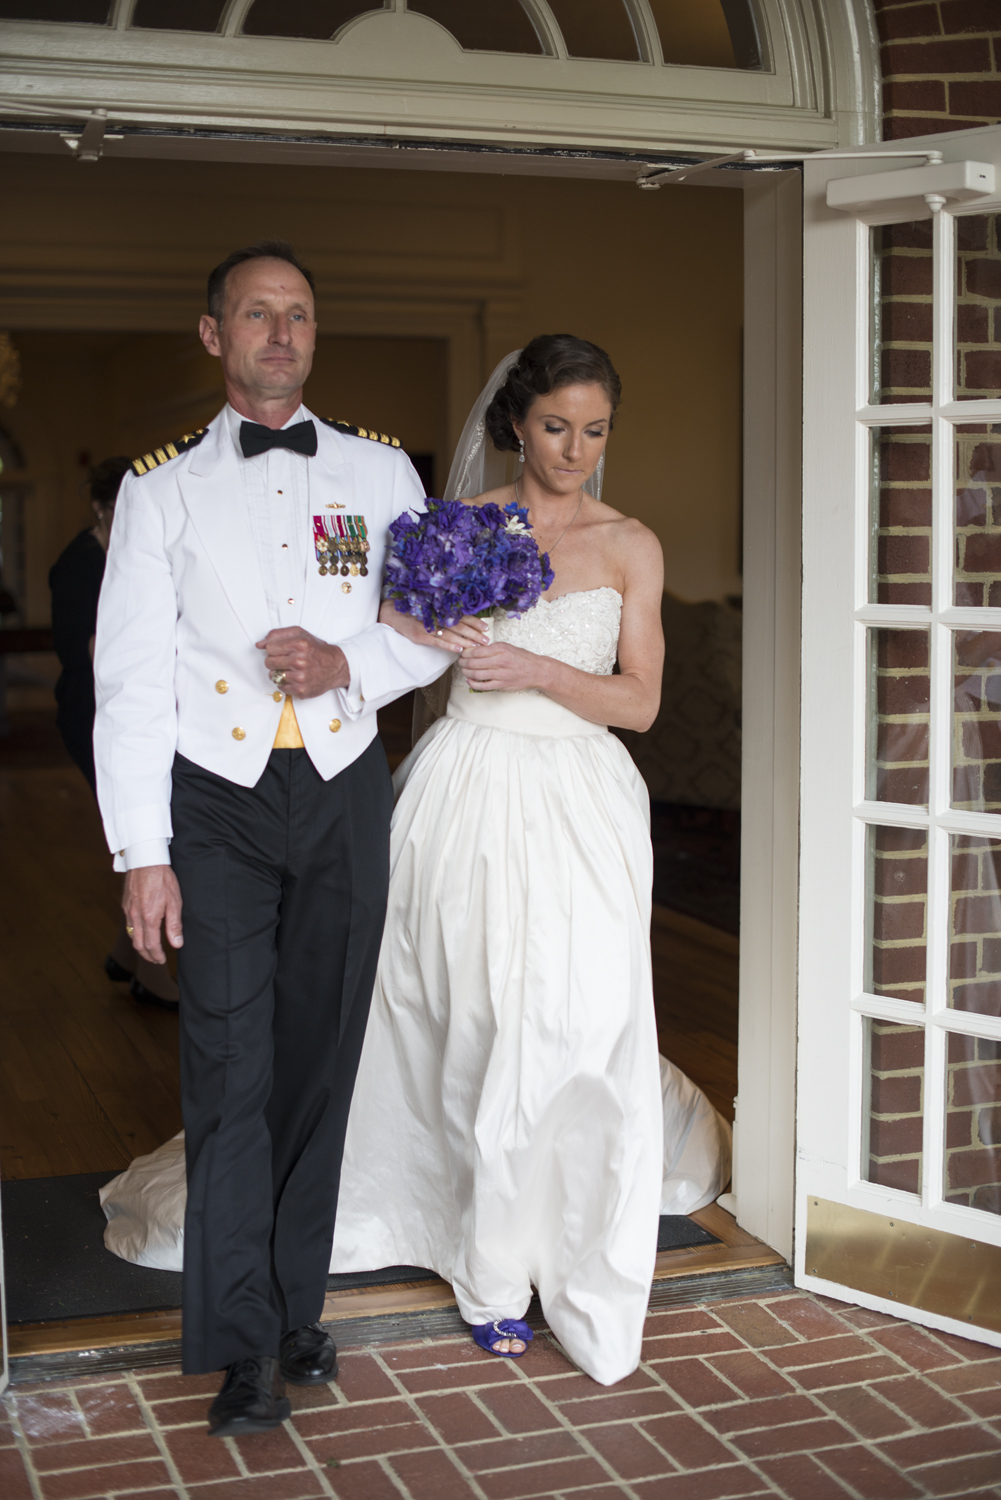 Bride walking down the aisle with her father |Maria Grace Photography